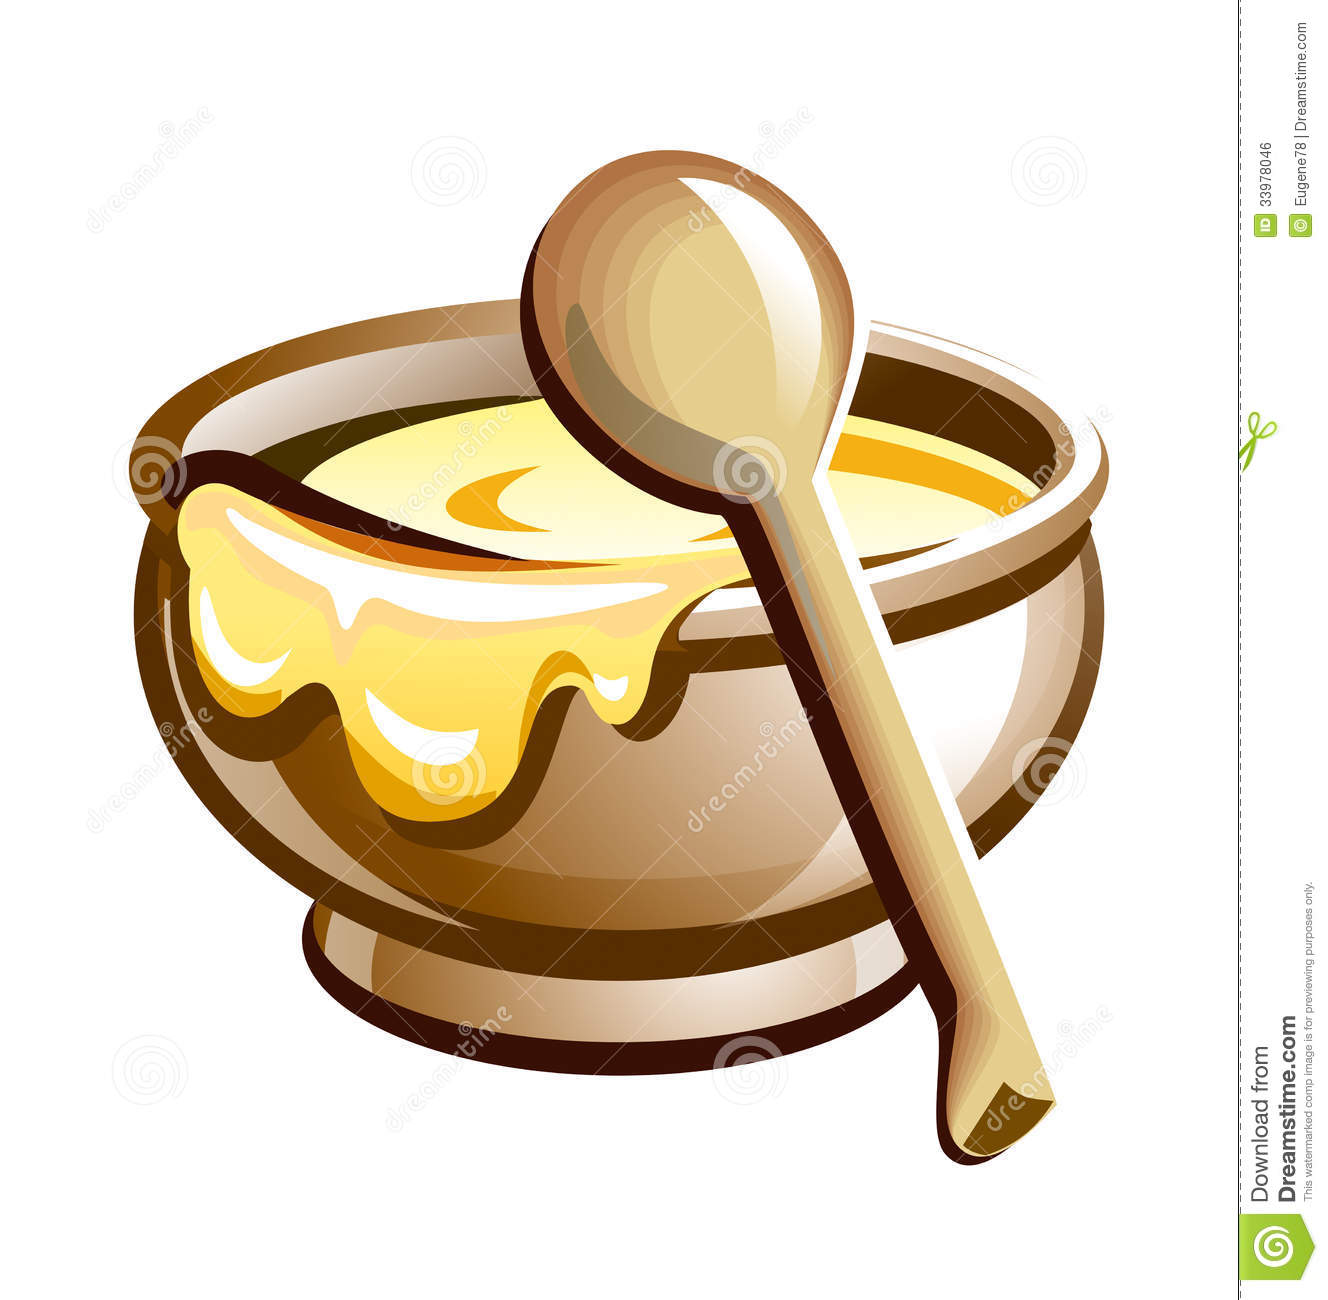 Porridge In The Pot With Wooden Spoon Royalty Free Stock Image   Image